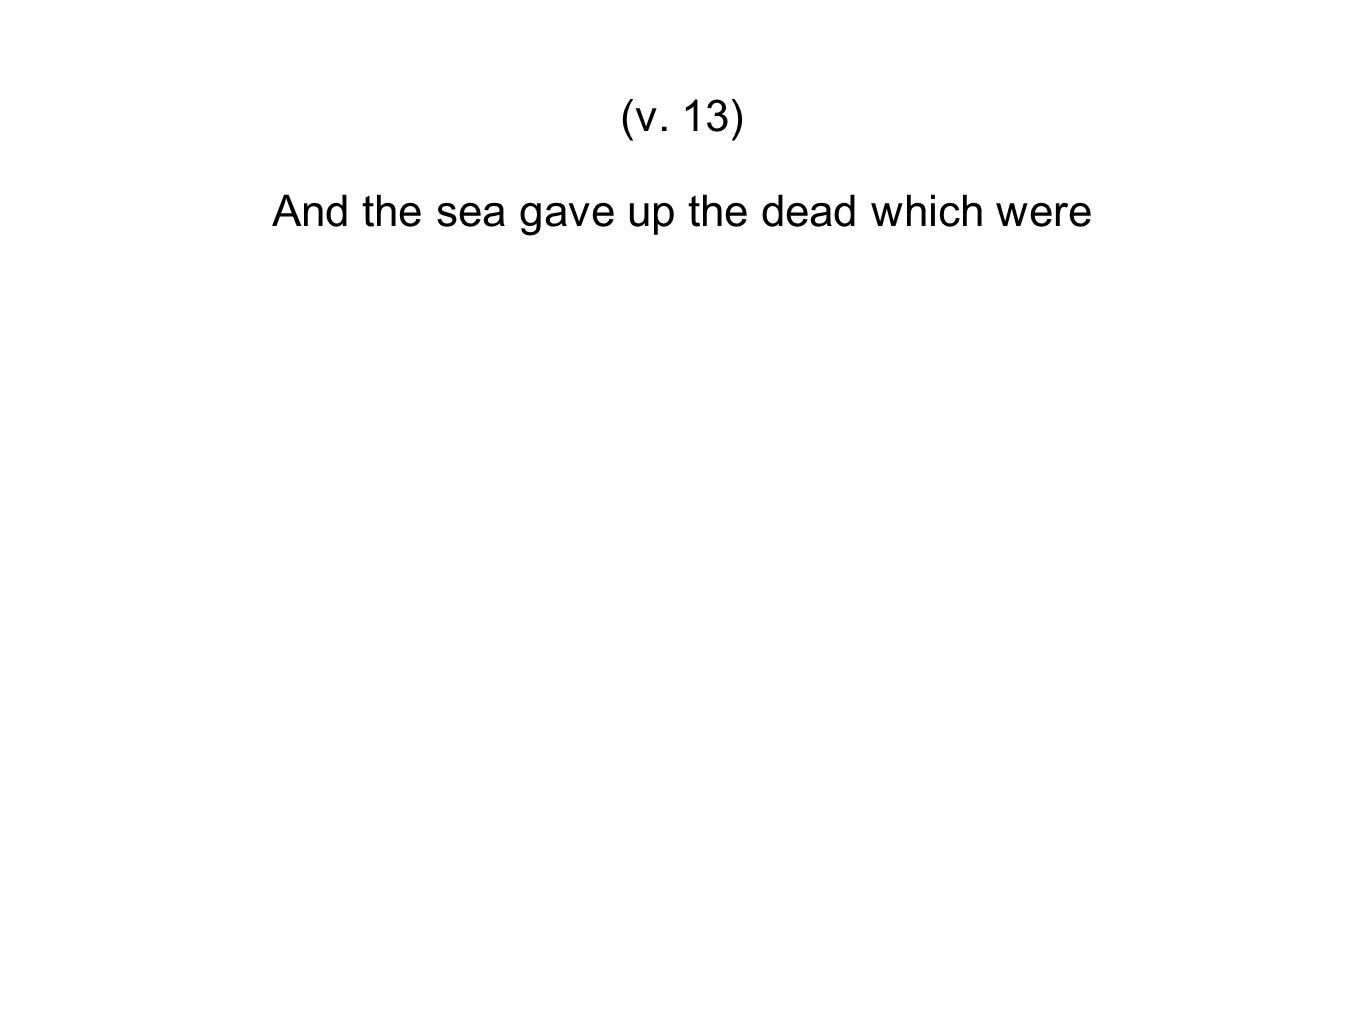 And the sea gave up the dead which were